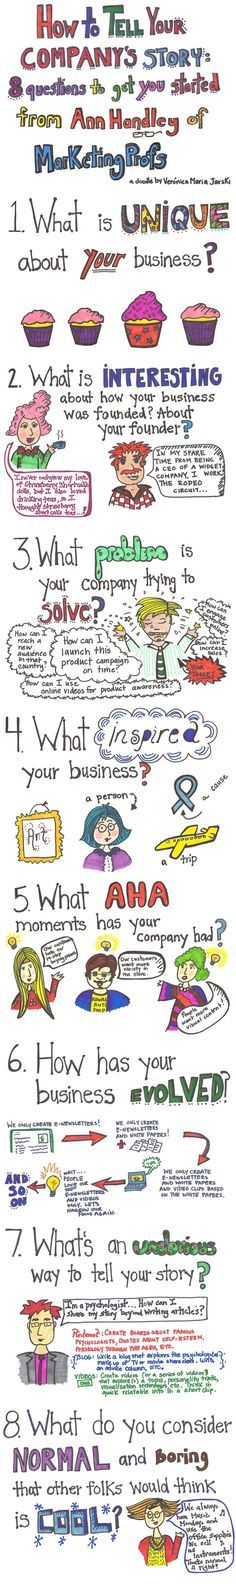 Infographic - Tips for Corporate Storytelling